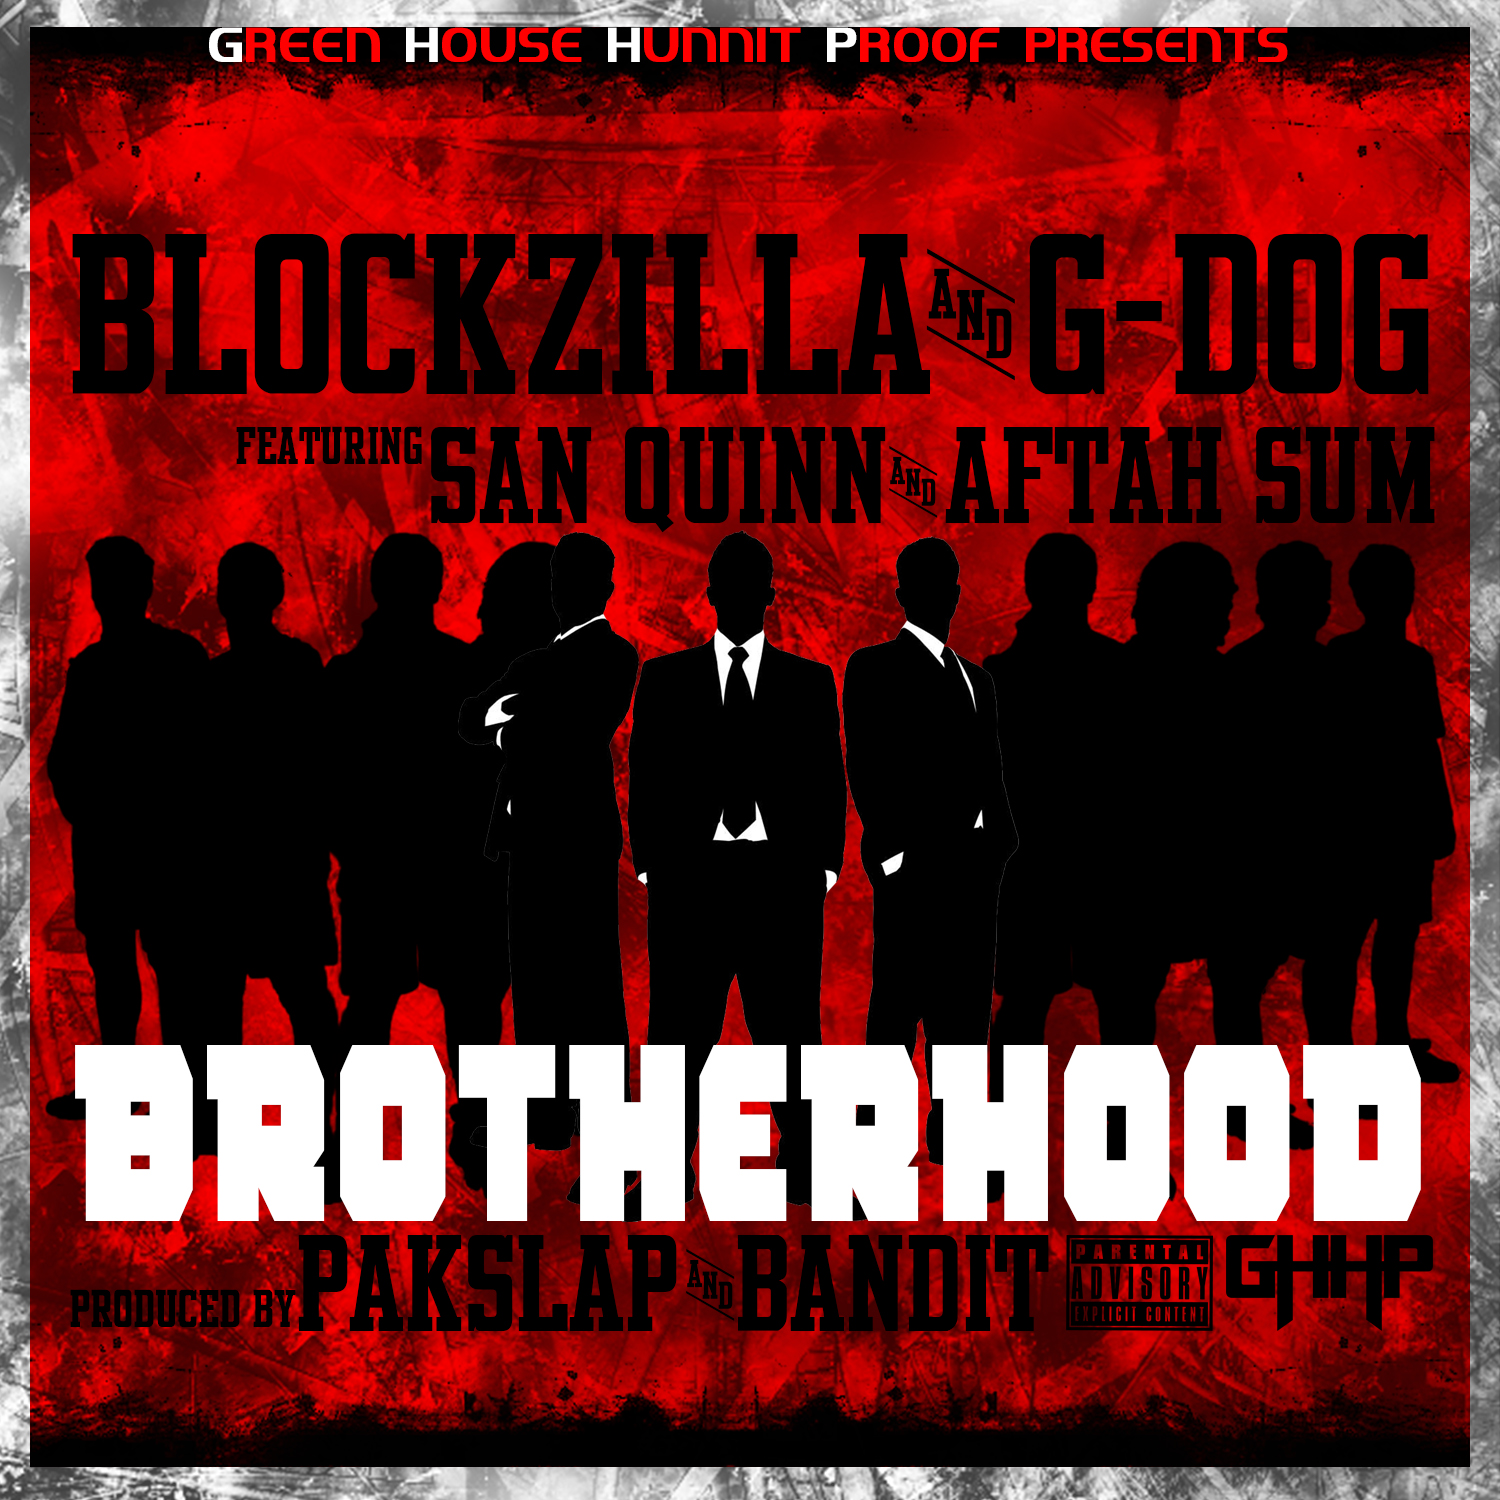 Blockzilla & G-Dog ft. San Quinn & Aftah Sum - Brotherhood (Produced by Pakslap & Bandit) [Thizzler.